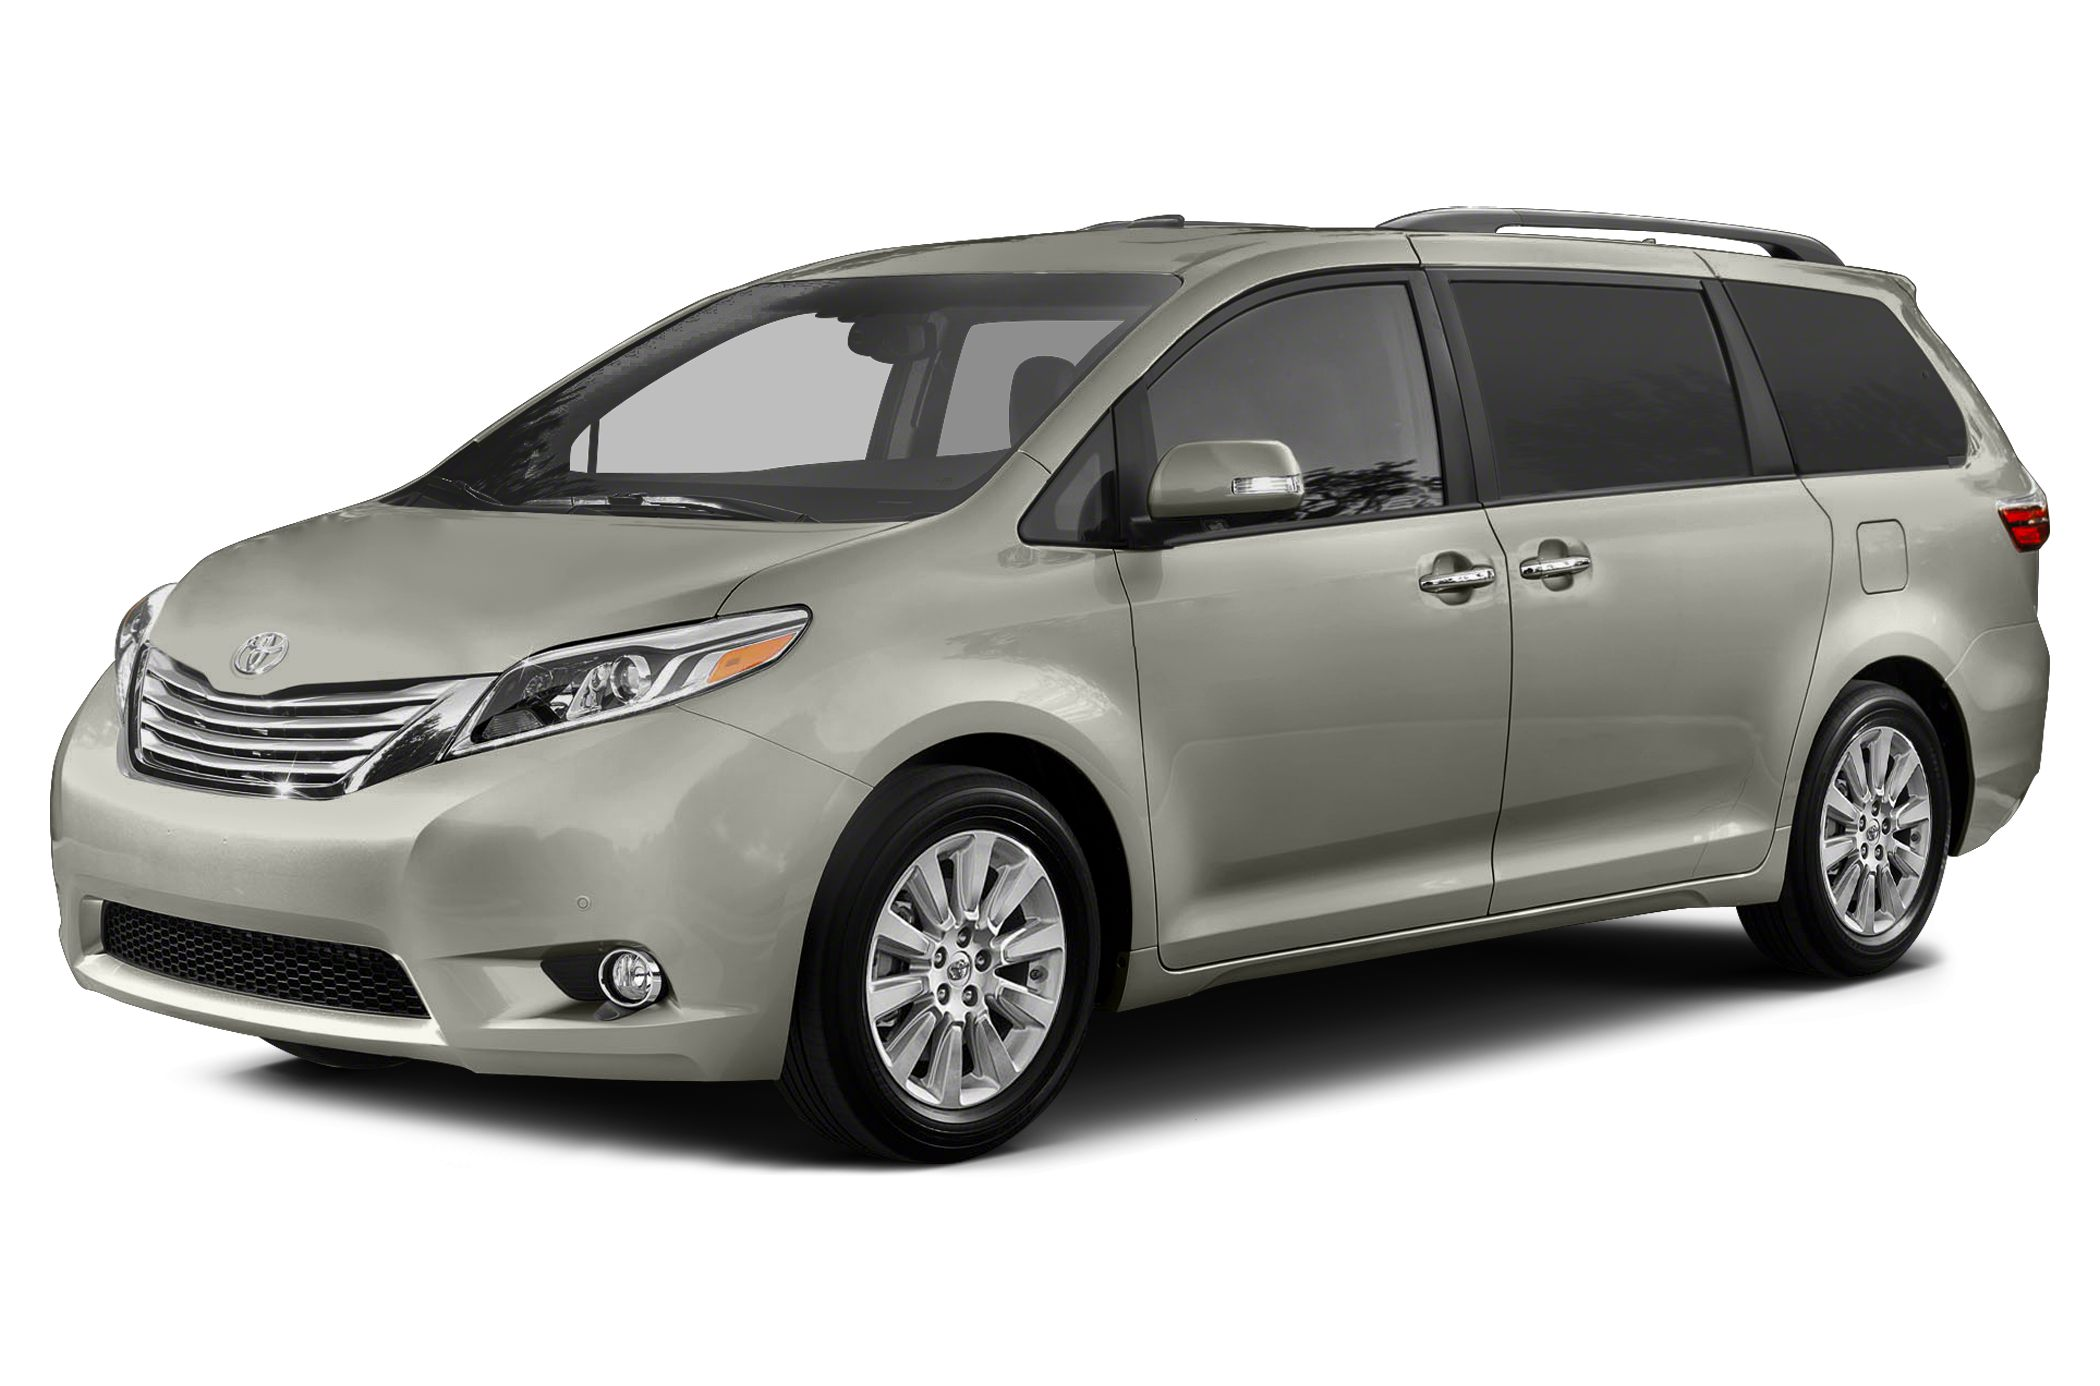 2015 Toyota Sienna L Minivan for sale in Nicholasville for $26,980 with 0 miles.